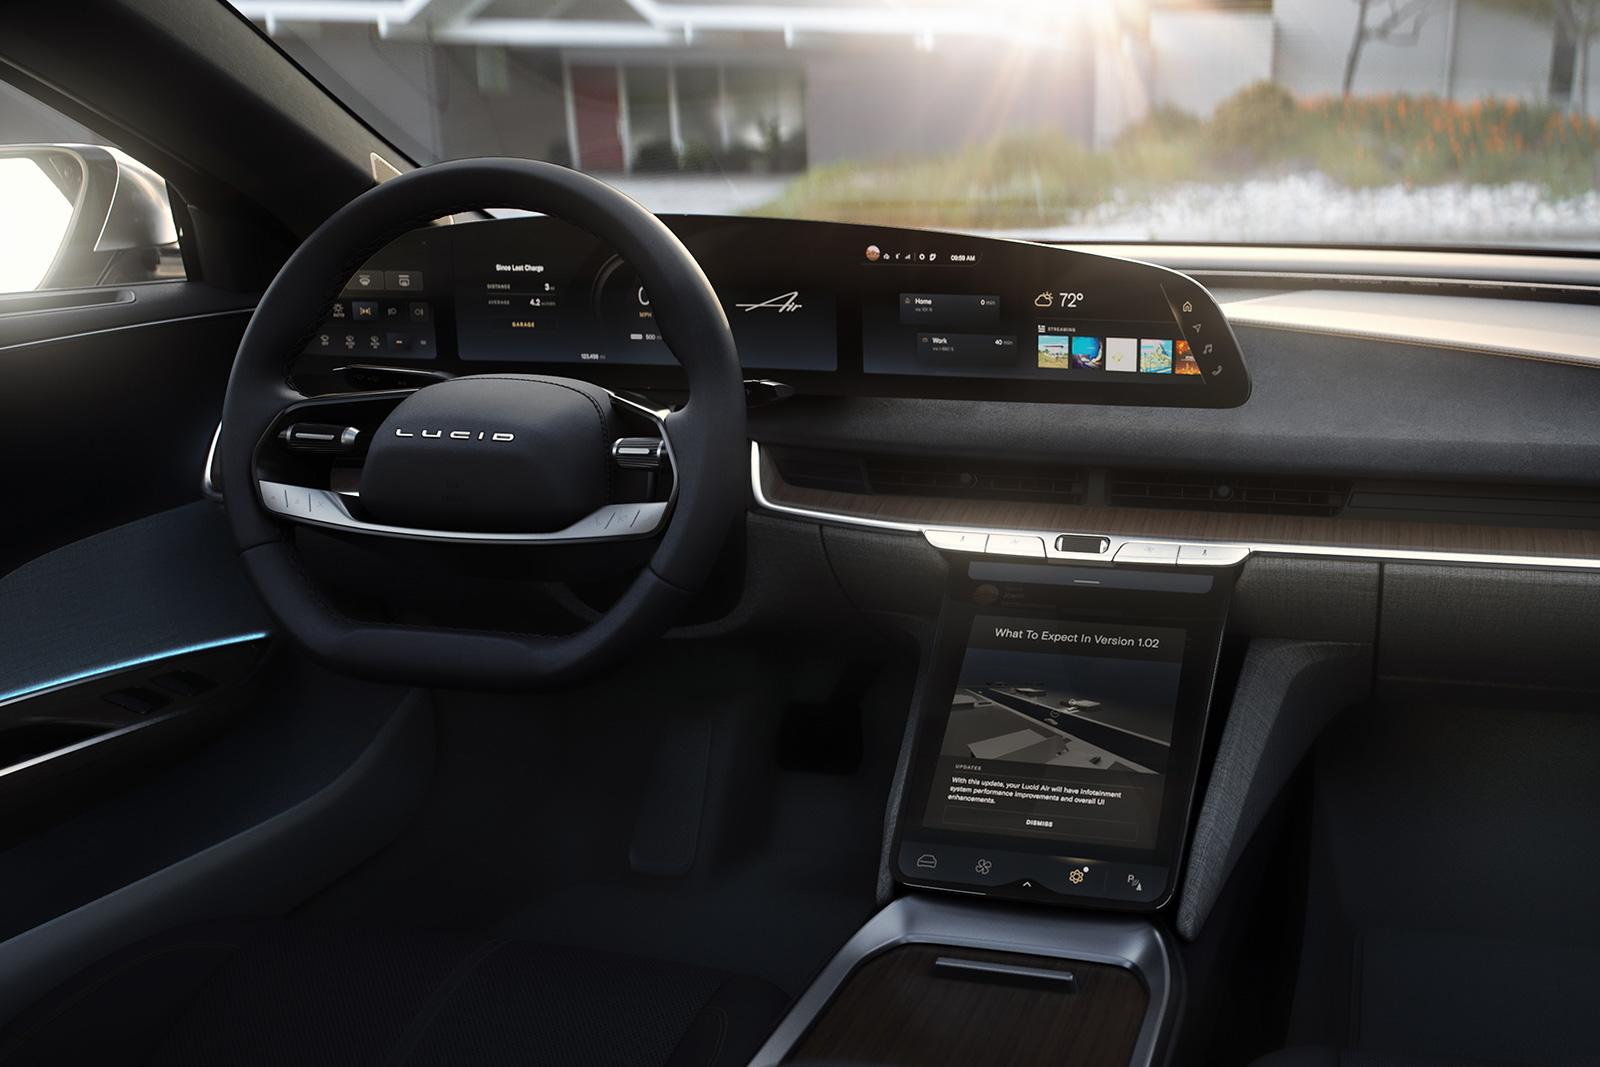 Lucid Air user experience interface